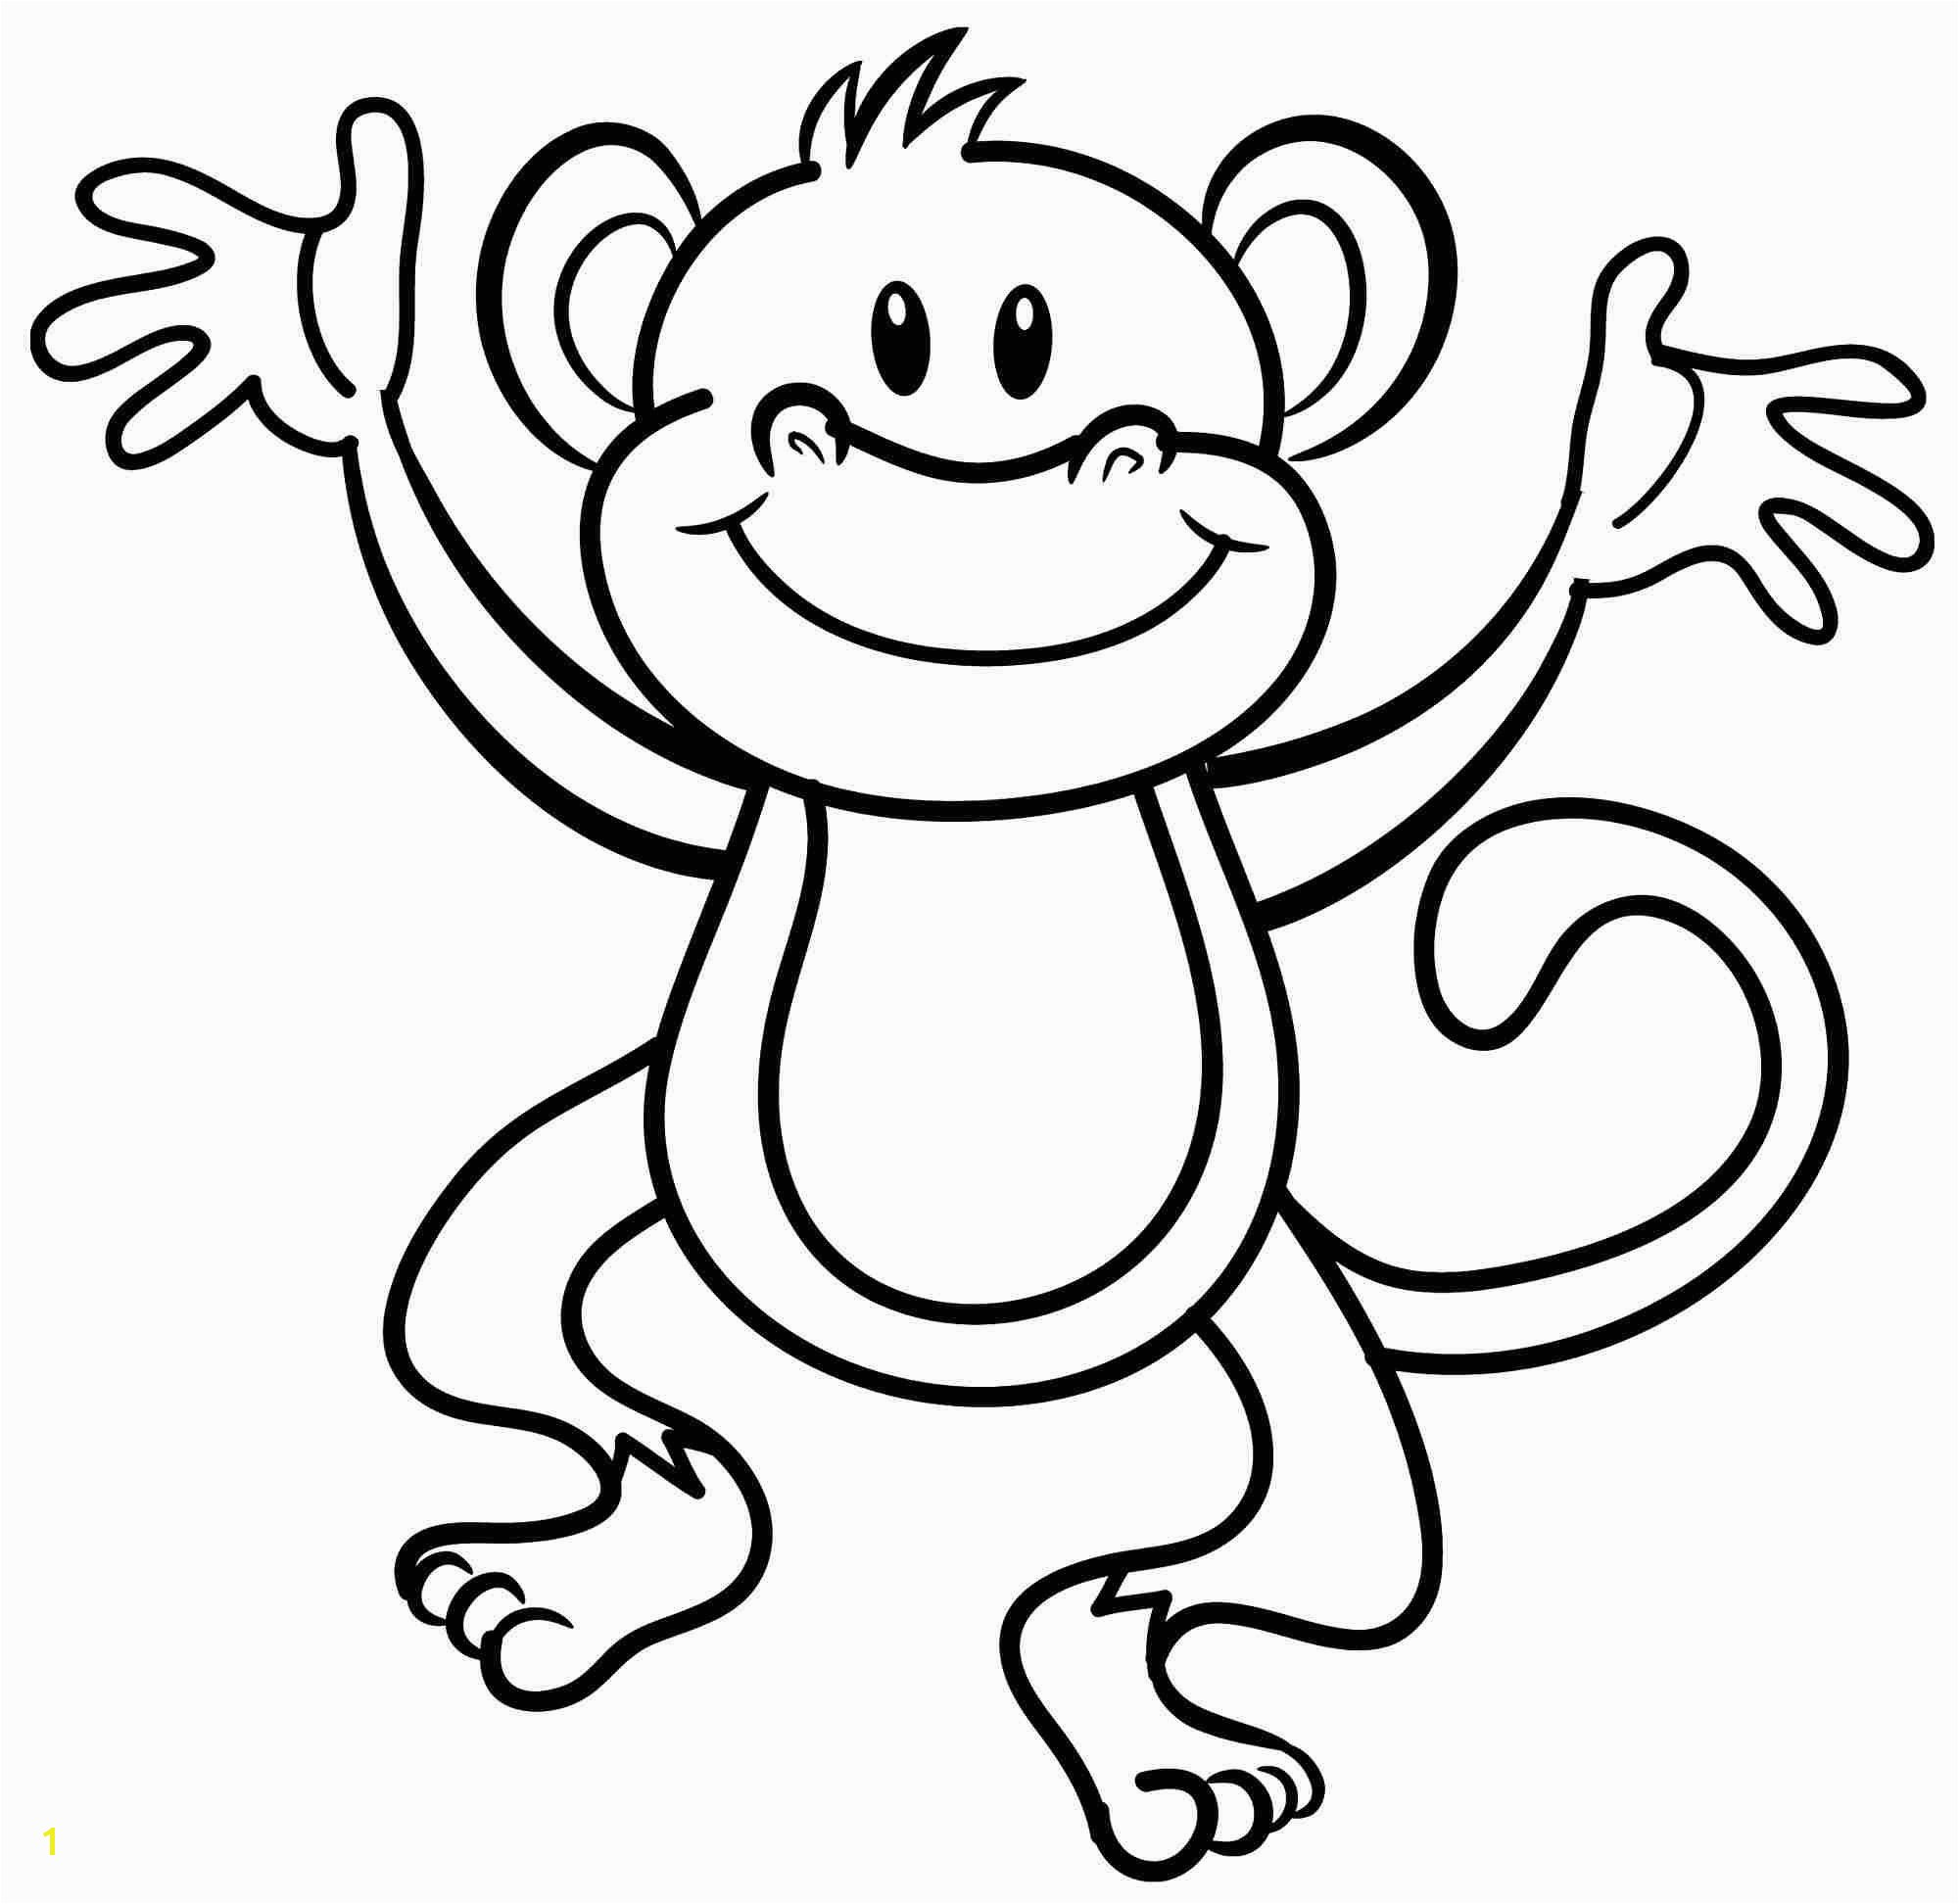 Monkey Coloring Books New 8 Pics Year Printable Pages Curious George